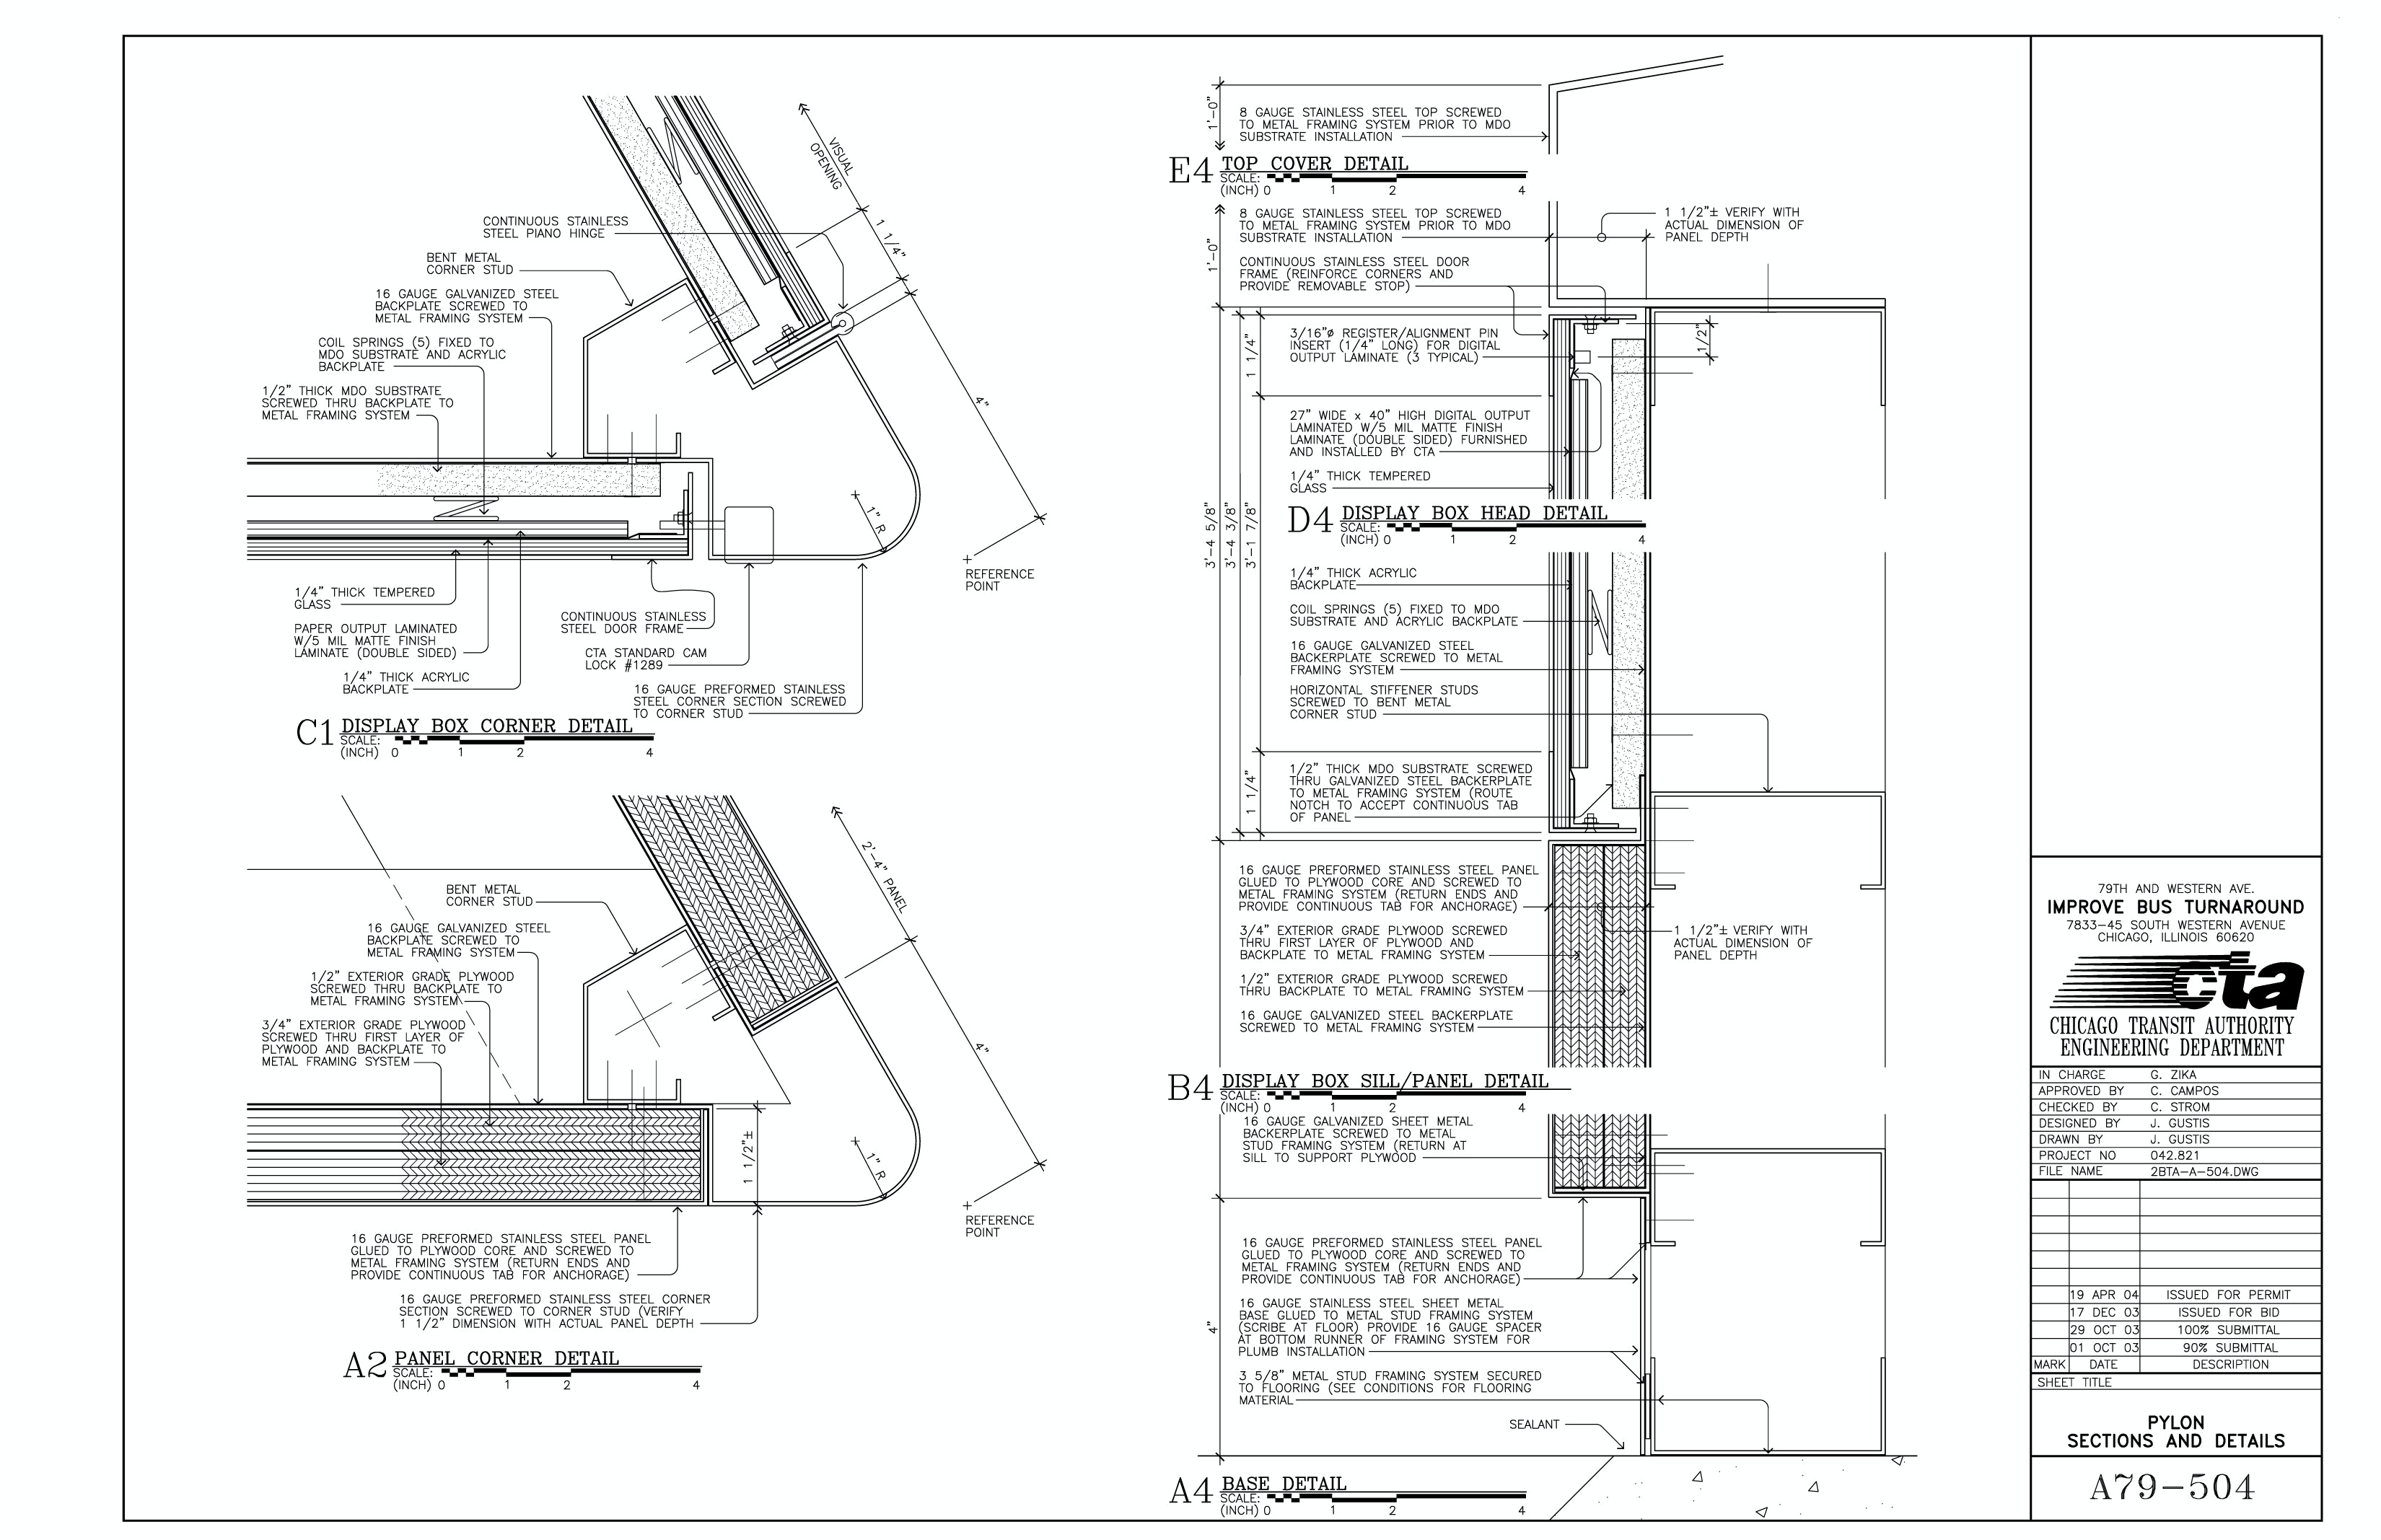 Epo Wiring Diagram from archinect.imgix.net